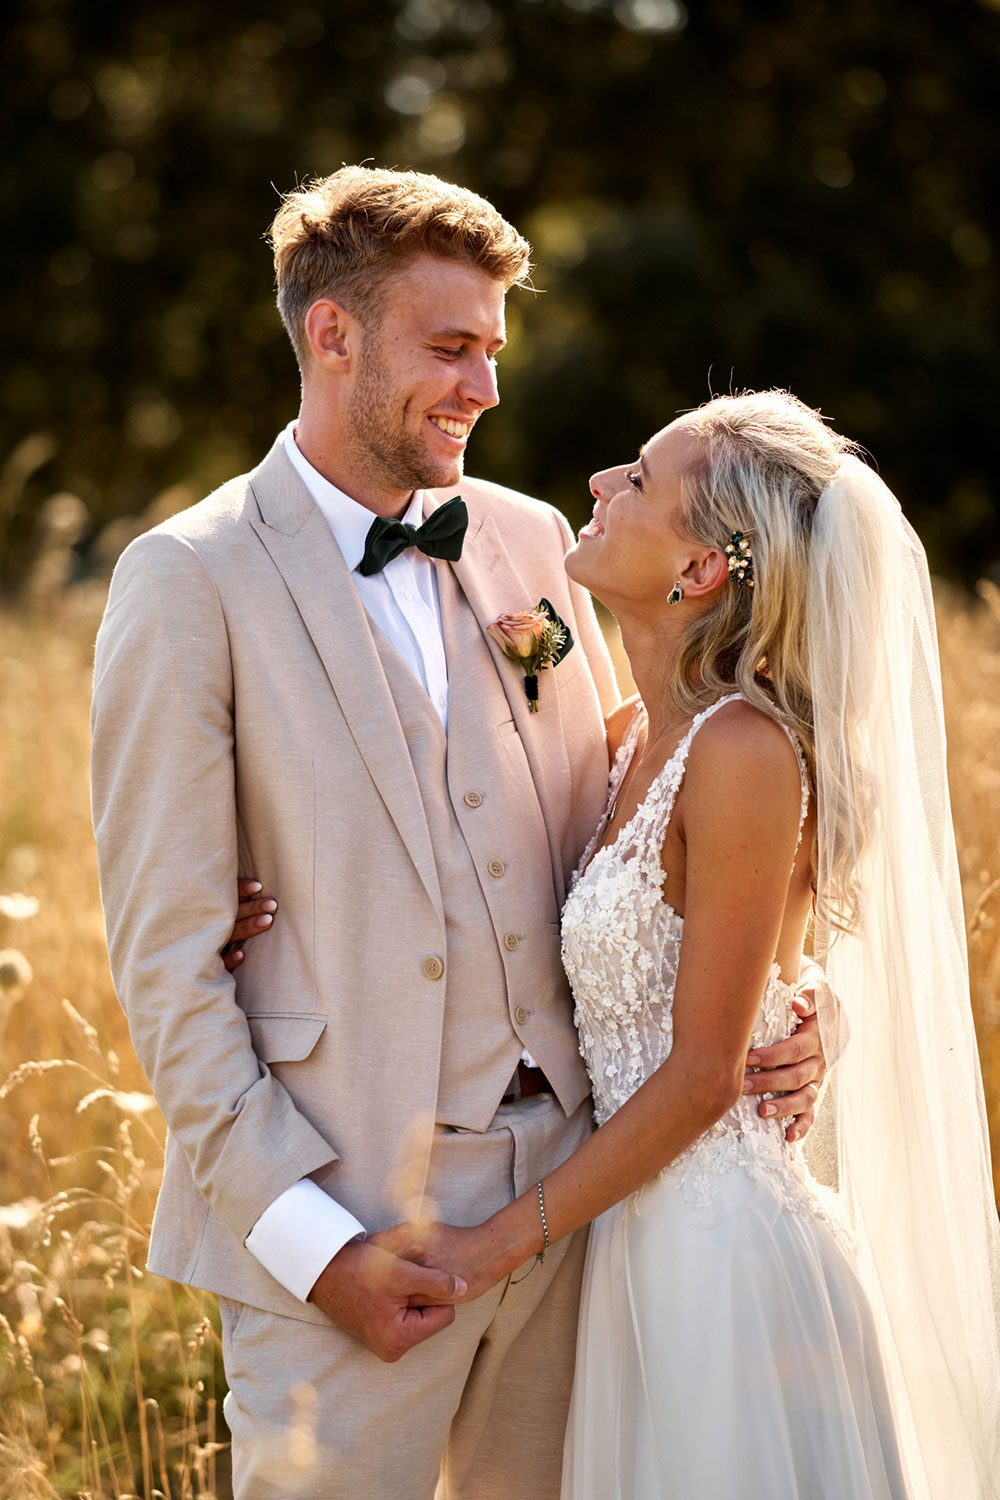 Bride wearing bespoke gown made of silk chiffon with delicate flower lace bodice by Vinka bridal designer Auckland - with groom looking at each other in field